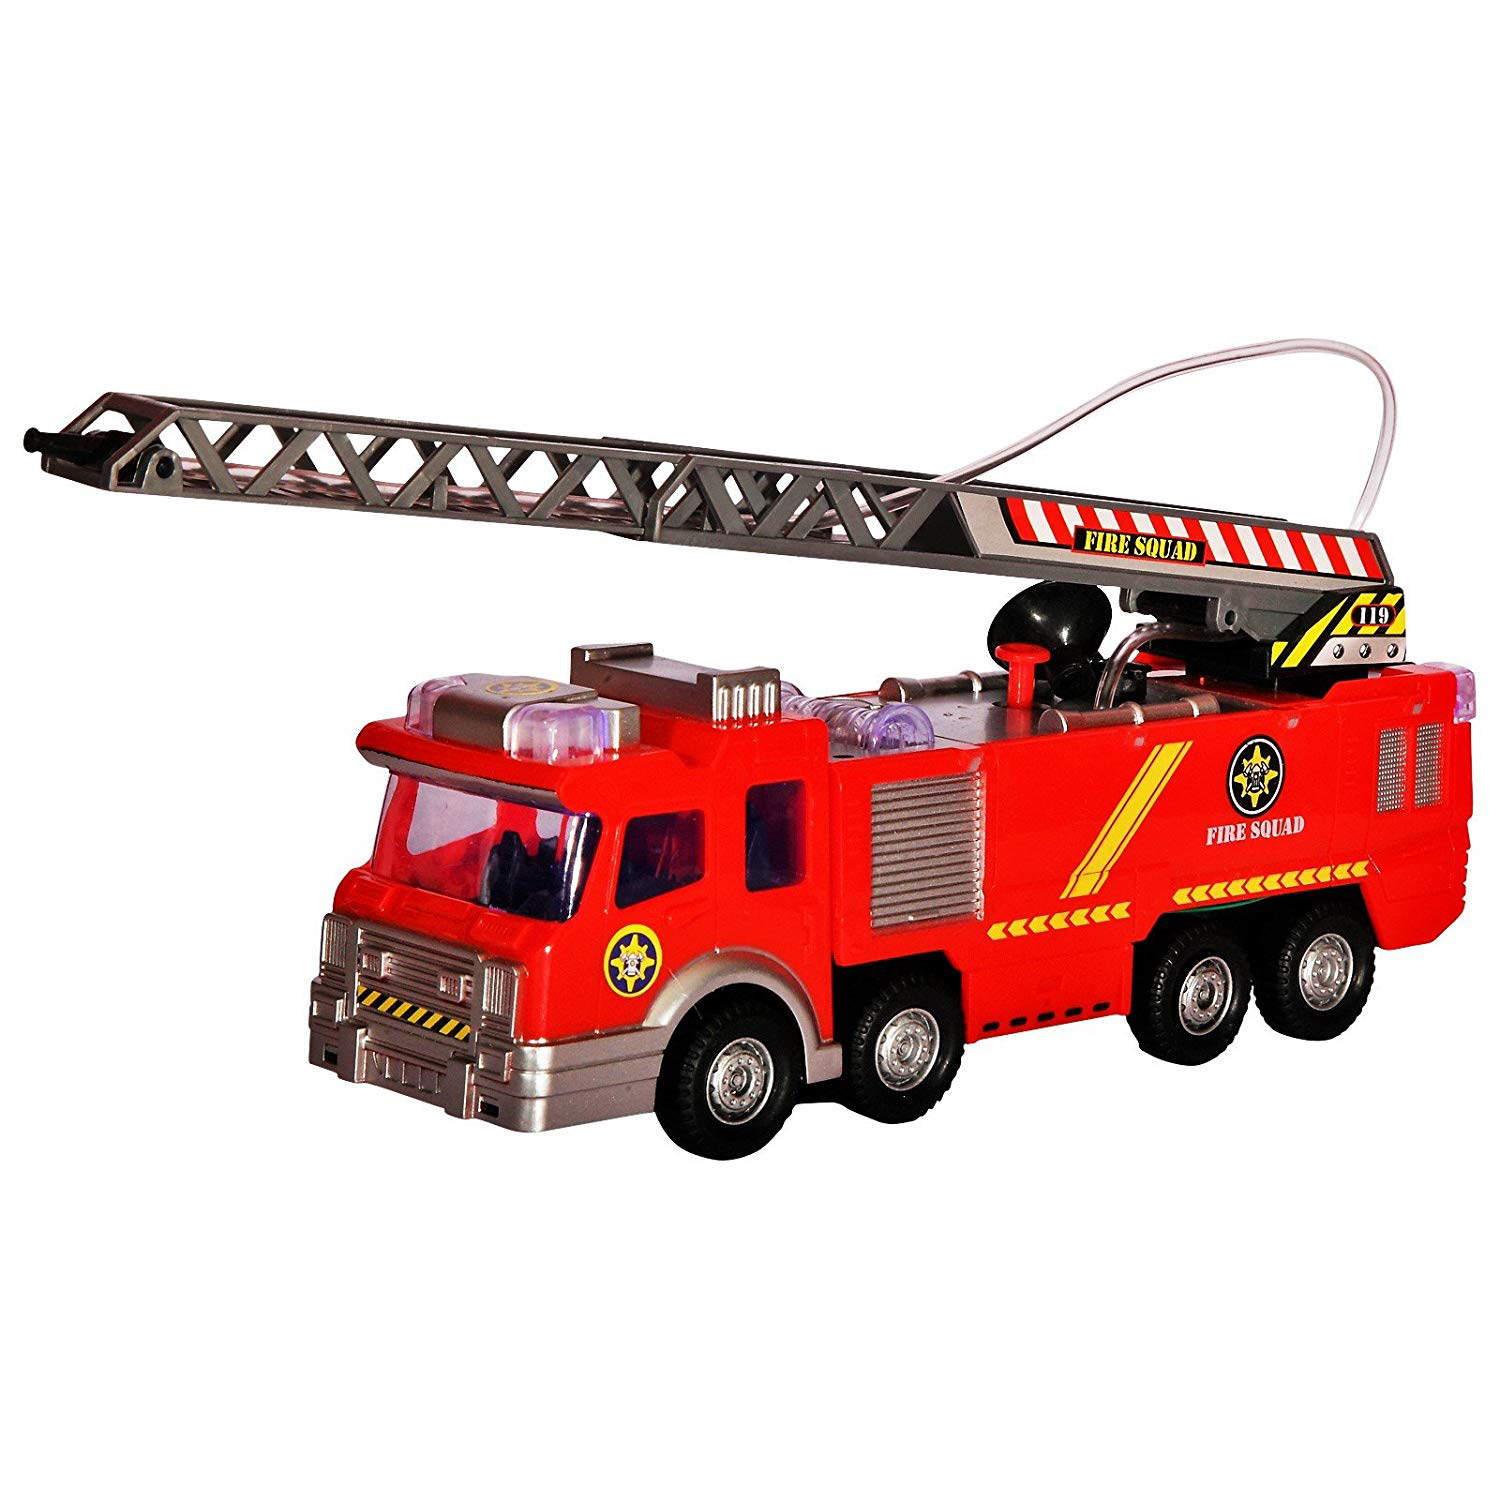 Fire Truck Toy Rescue With Shooting Water Flashing Lights And Siren